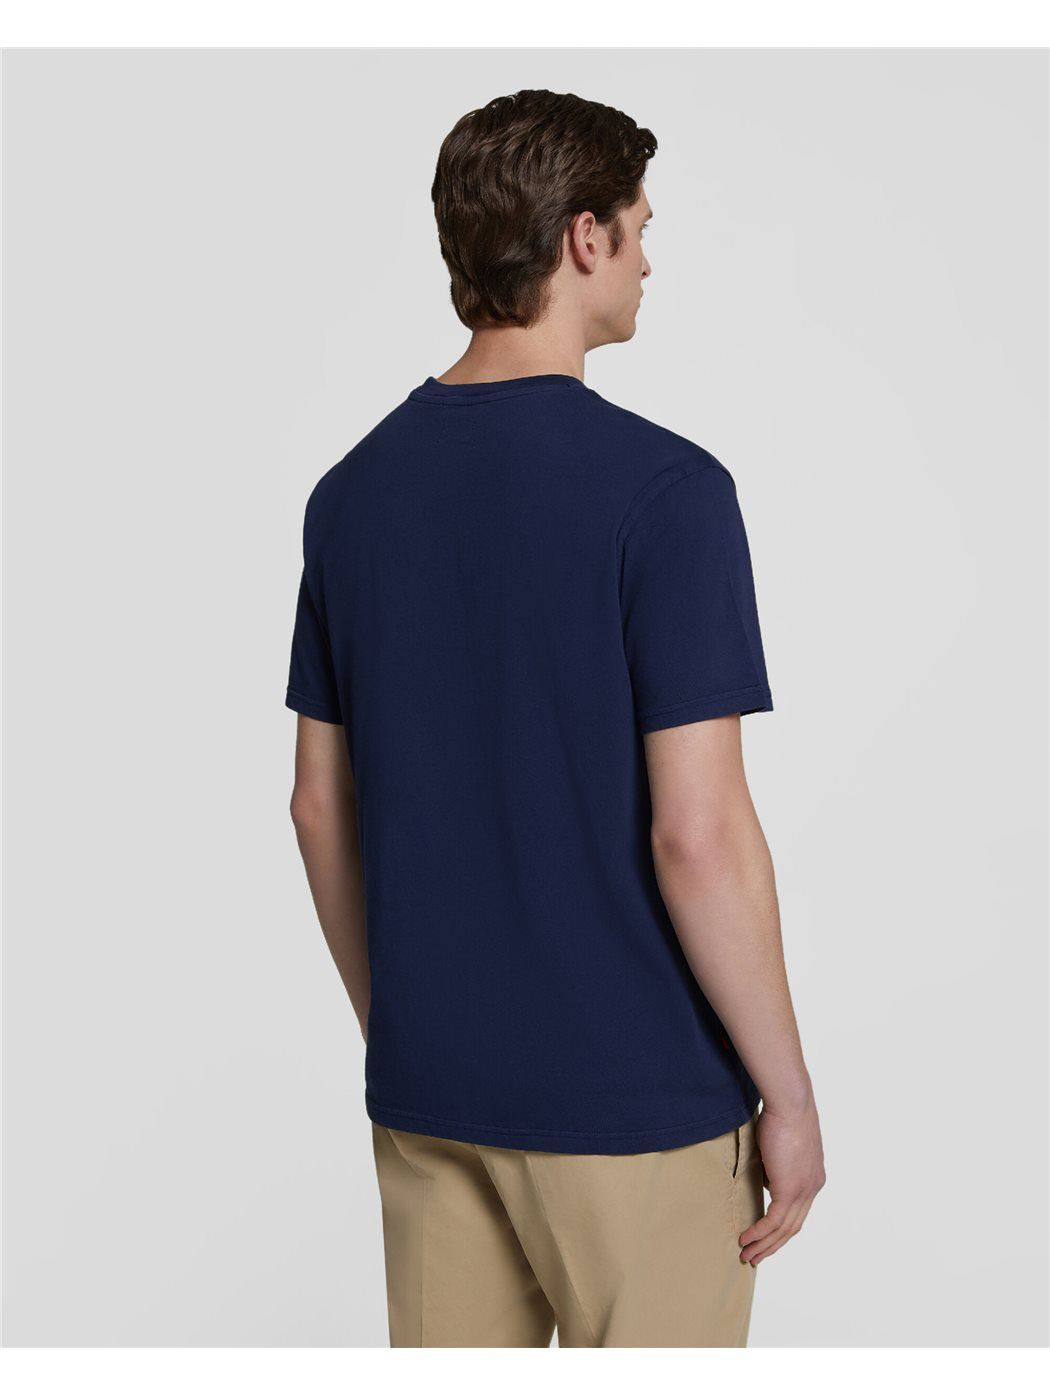 WOOLRICH wote0027mr 3496 T-SHIRT